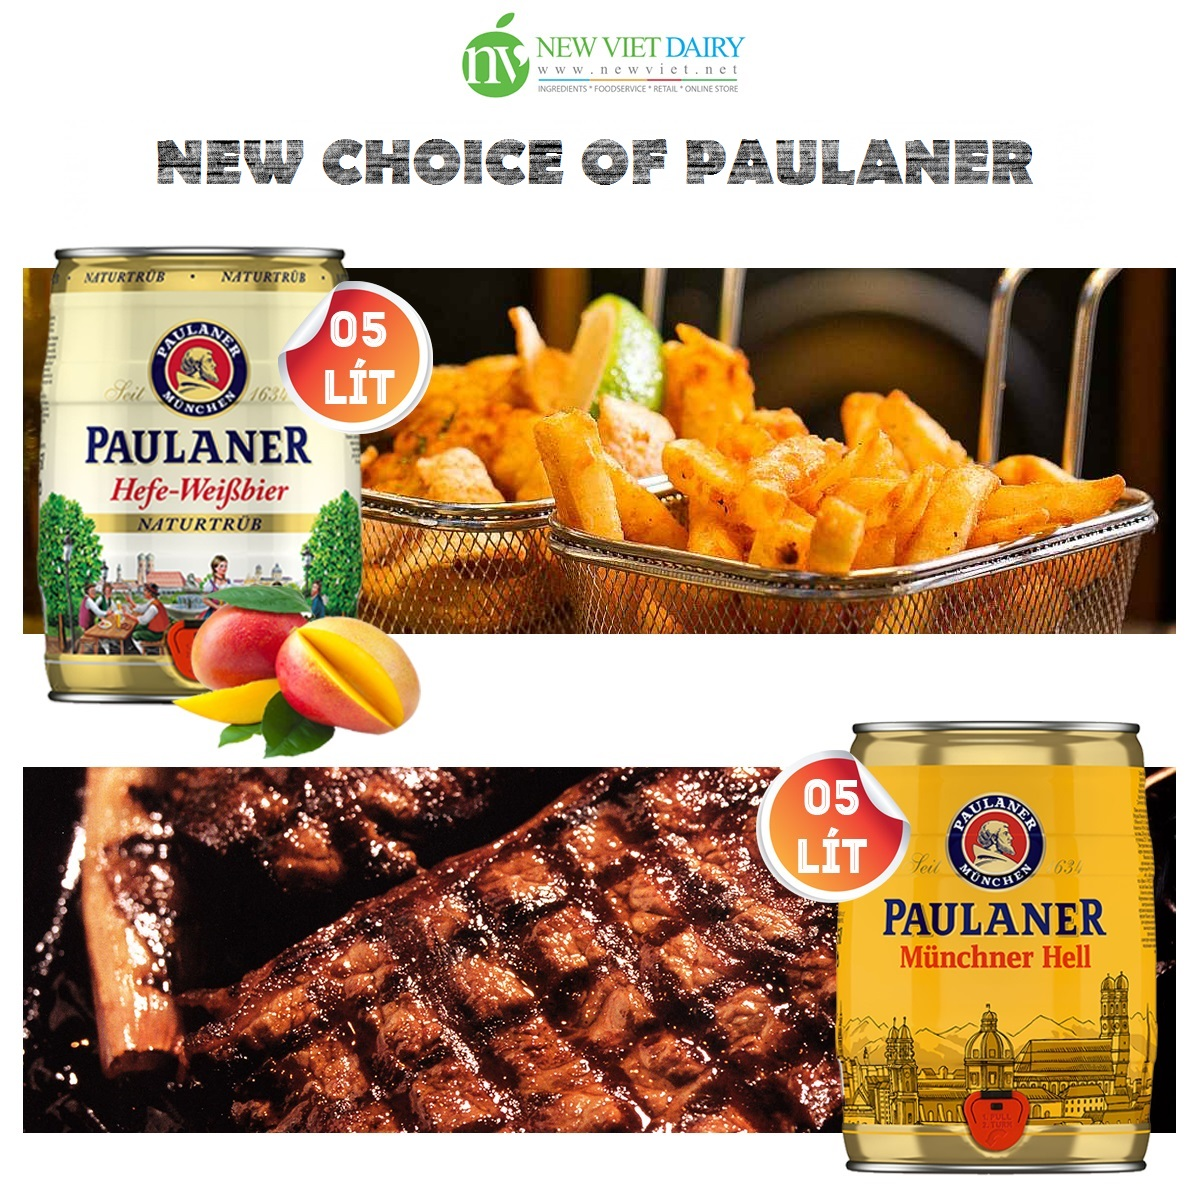 PAULANER – More choices for the gourmet